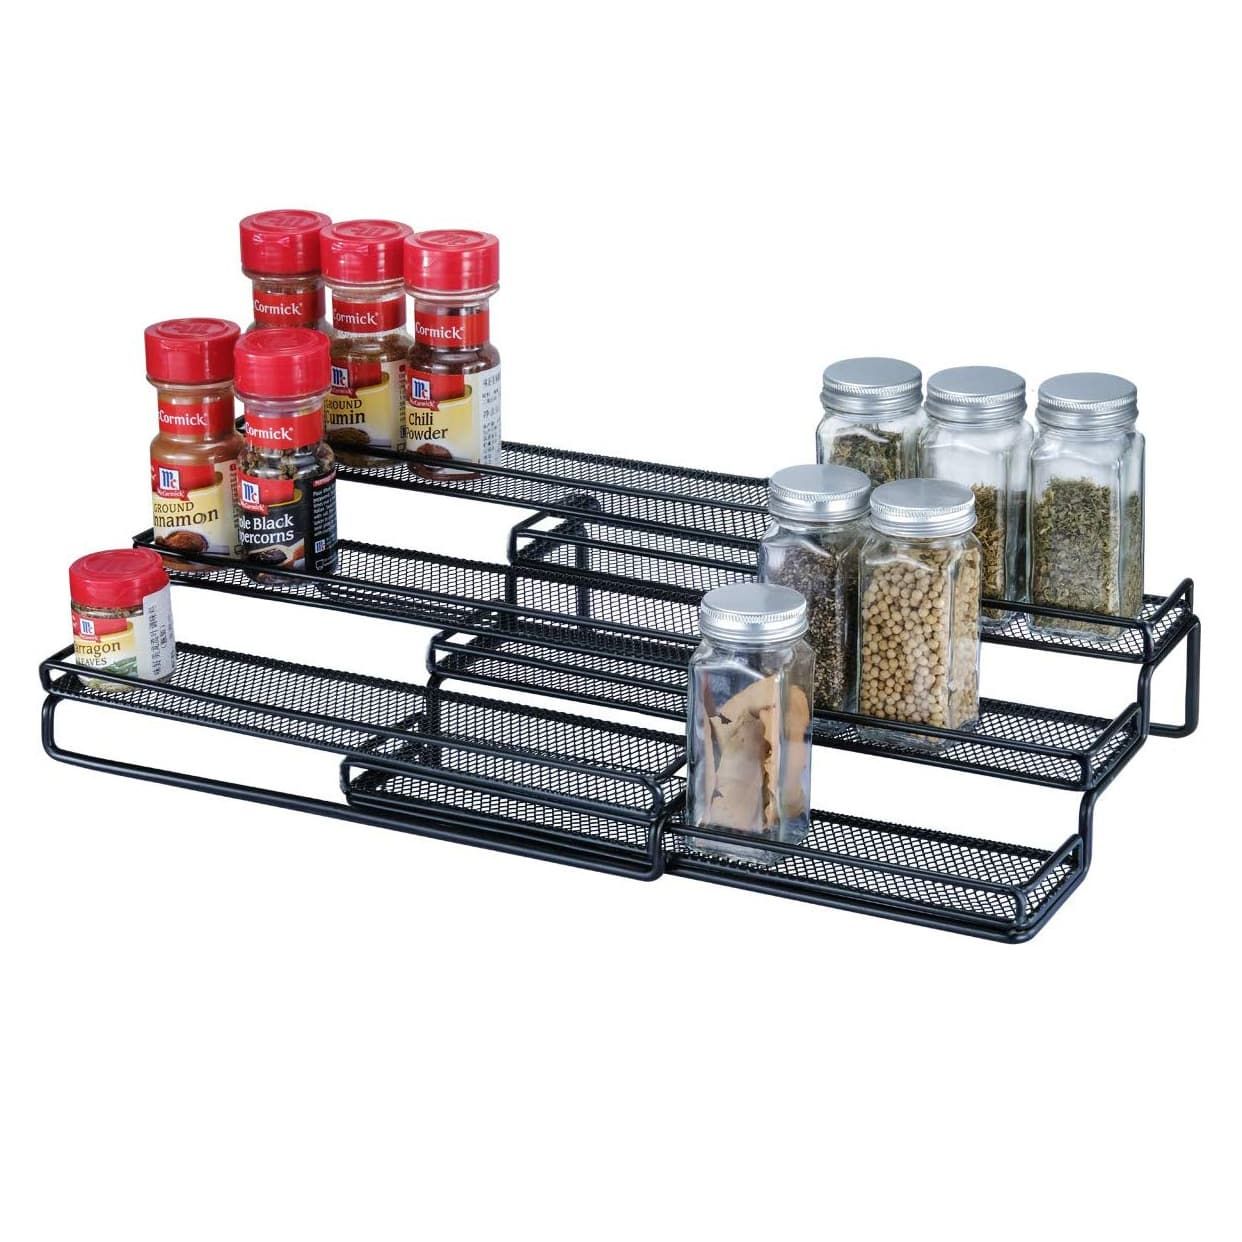 3 Tier Expandable Spice Rack